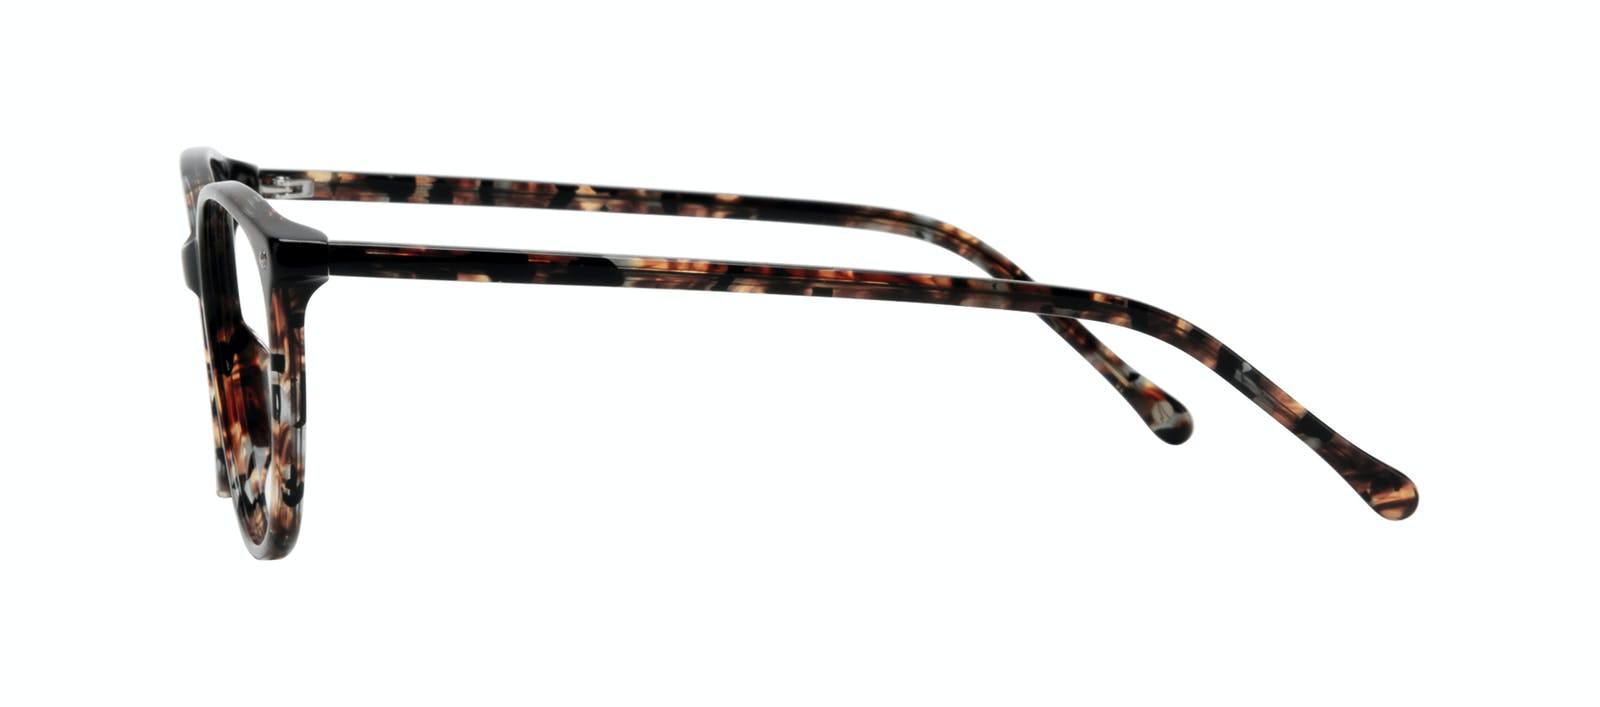 a45d8243190 Affordable Fashion Glasses Rectangle Square Round Eyeglasses Women Nadine  Sepia Side